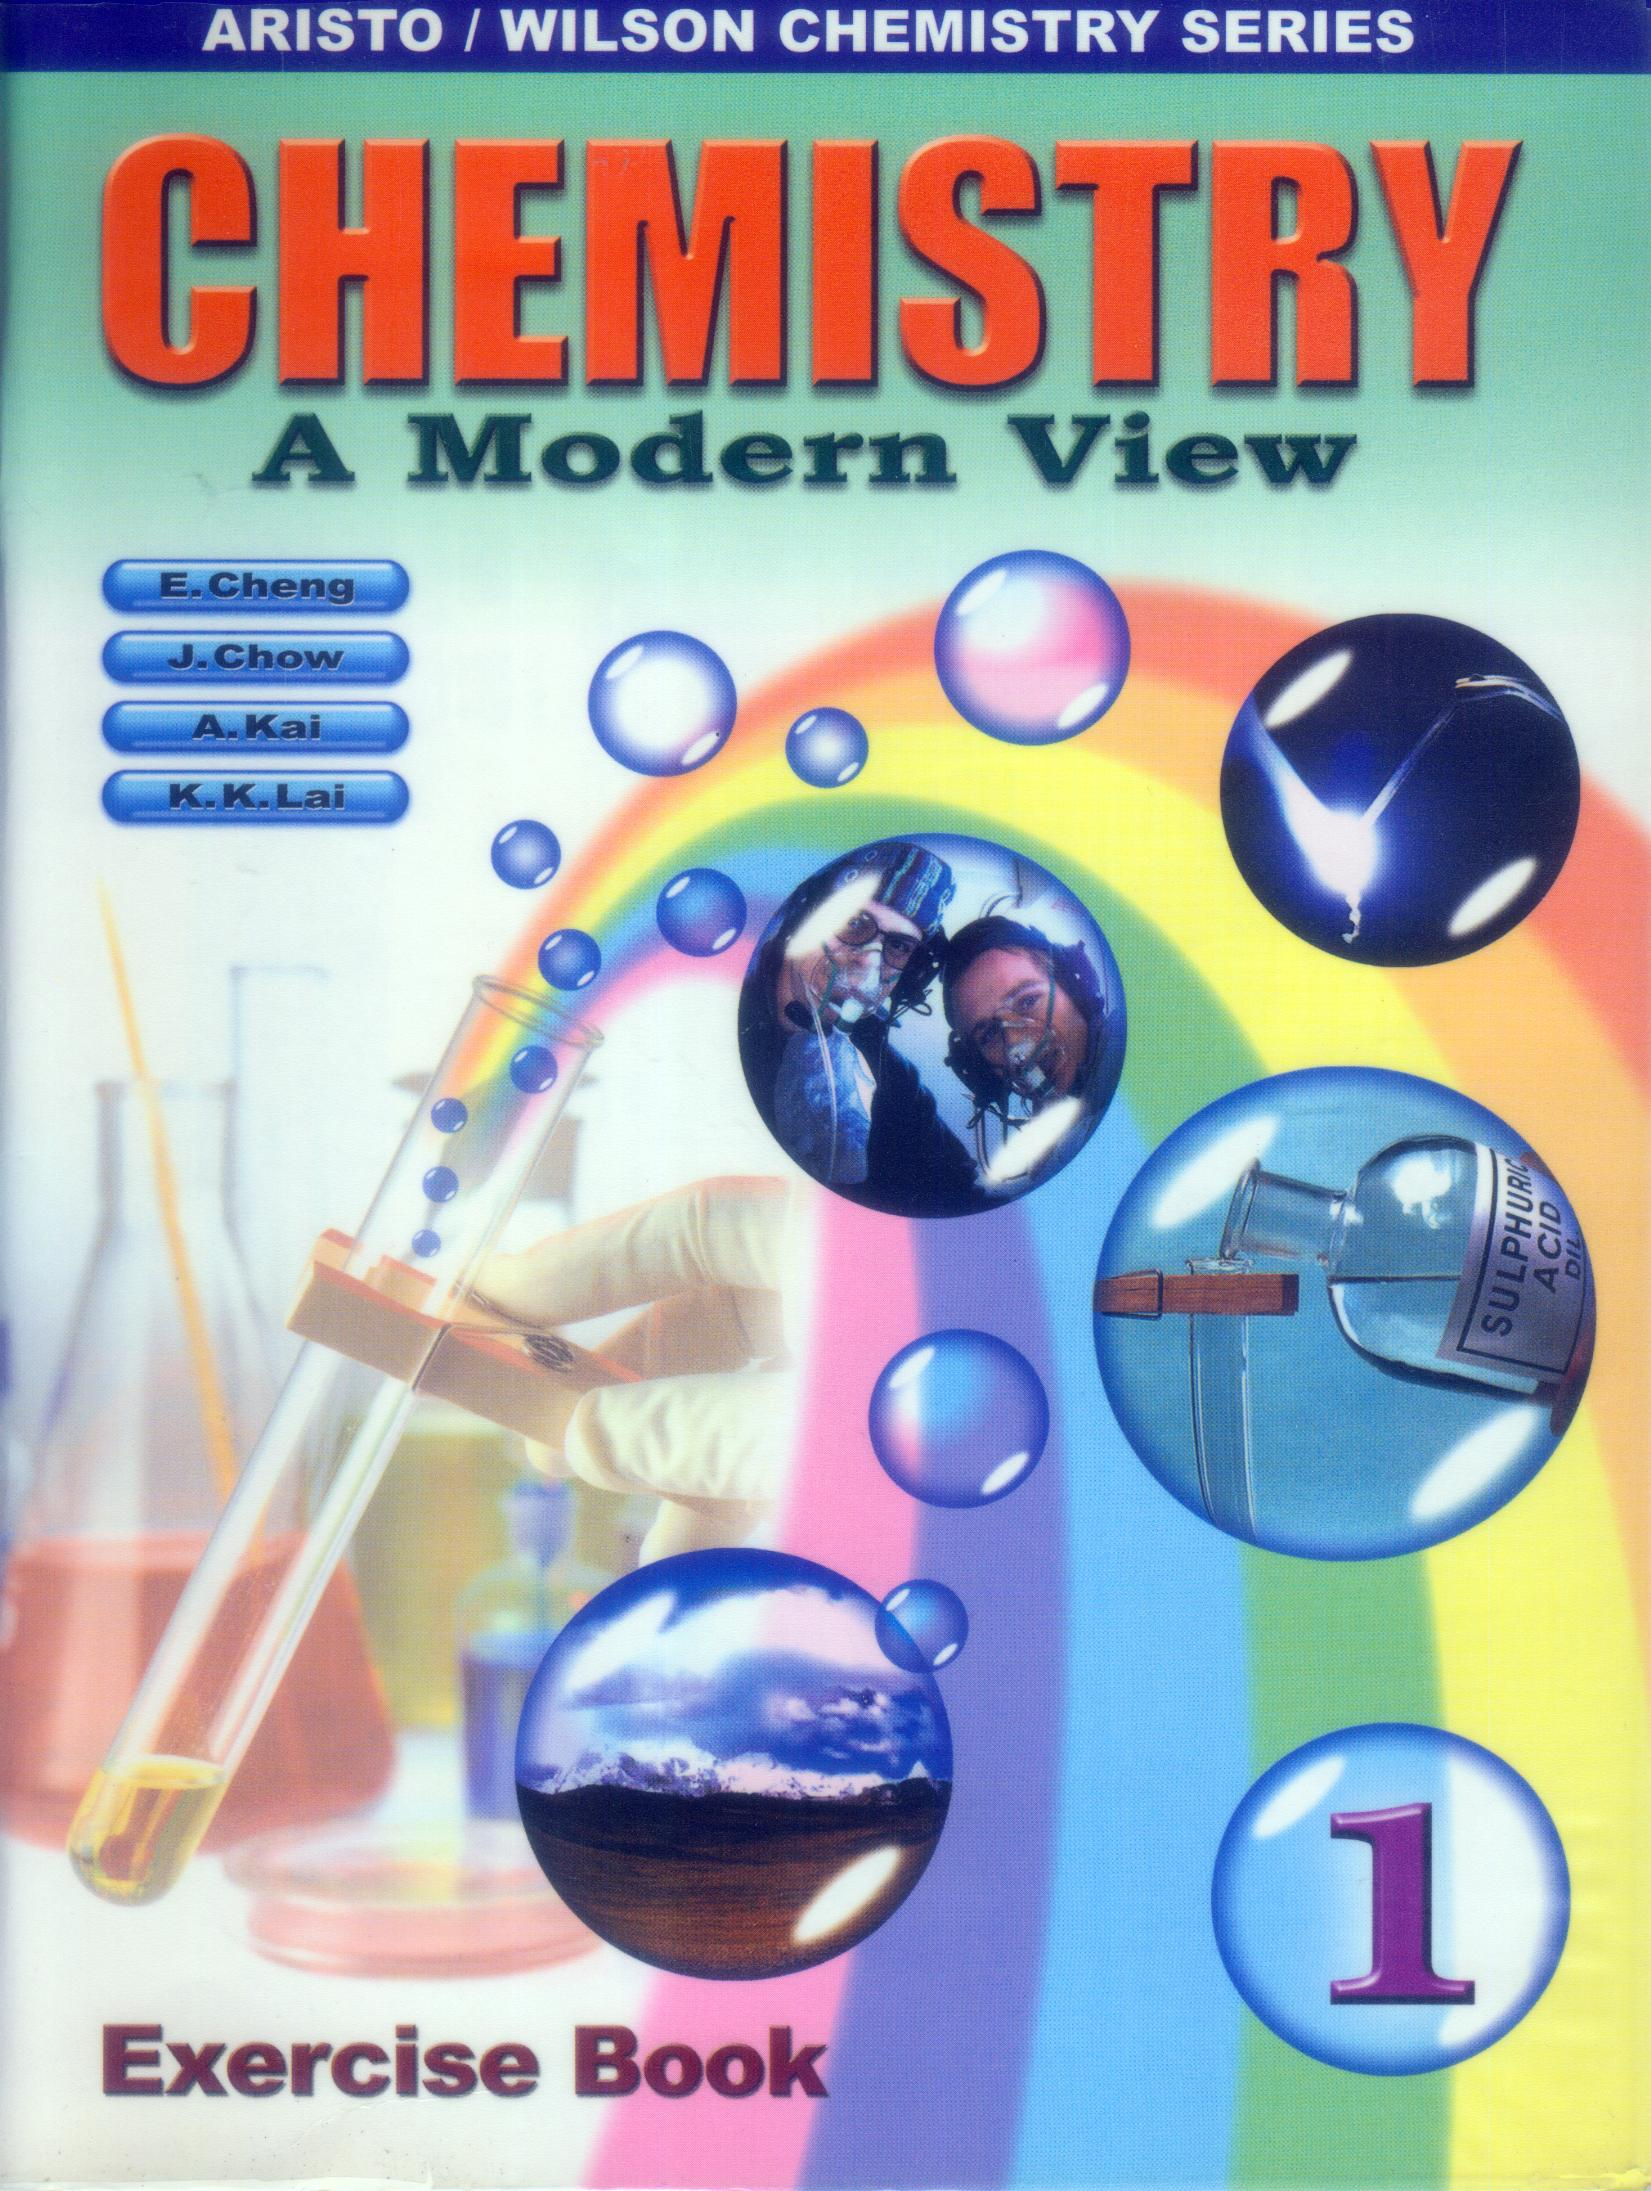 Chemistry A Modern View(1)(Exercise Book)